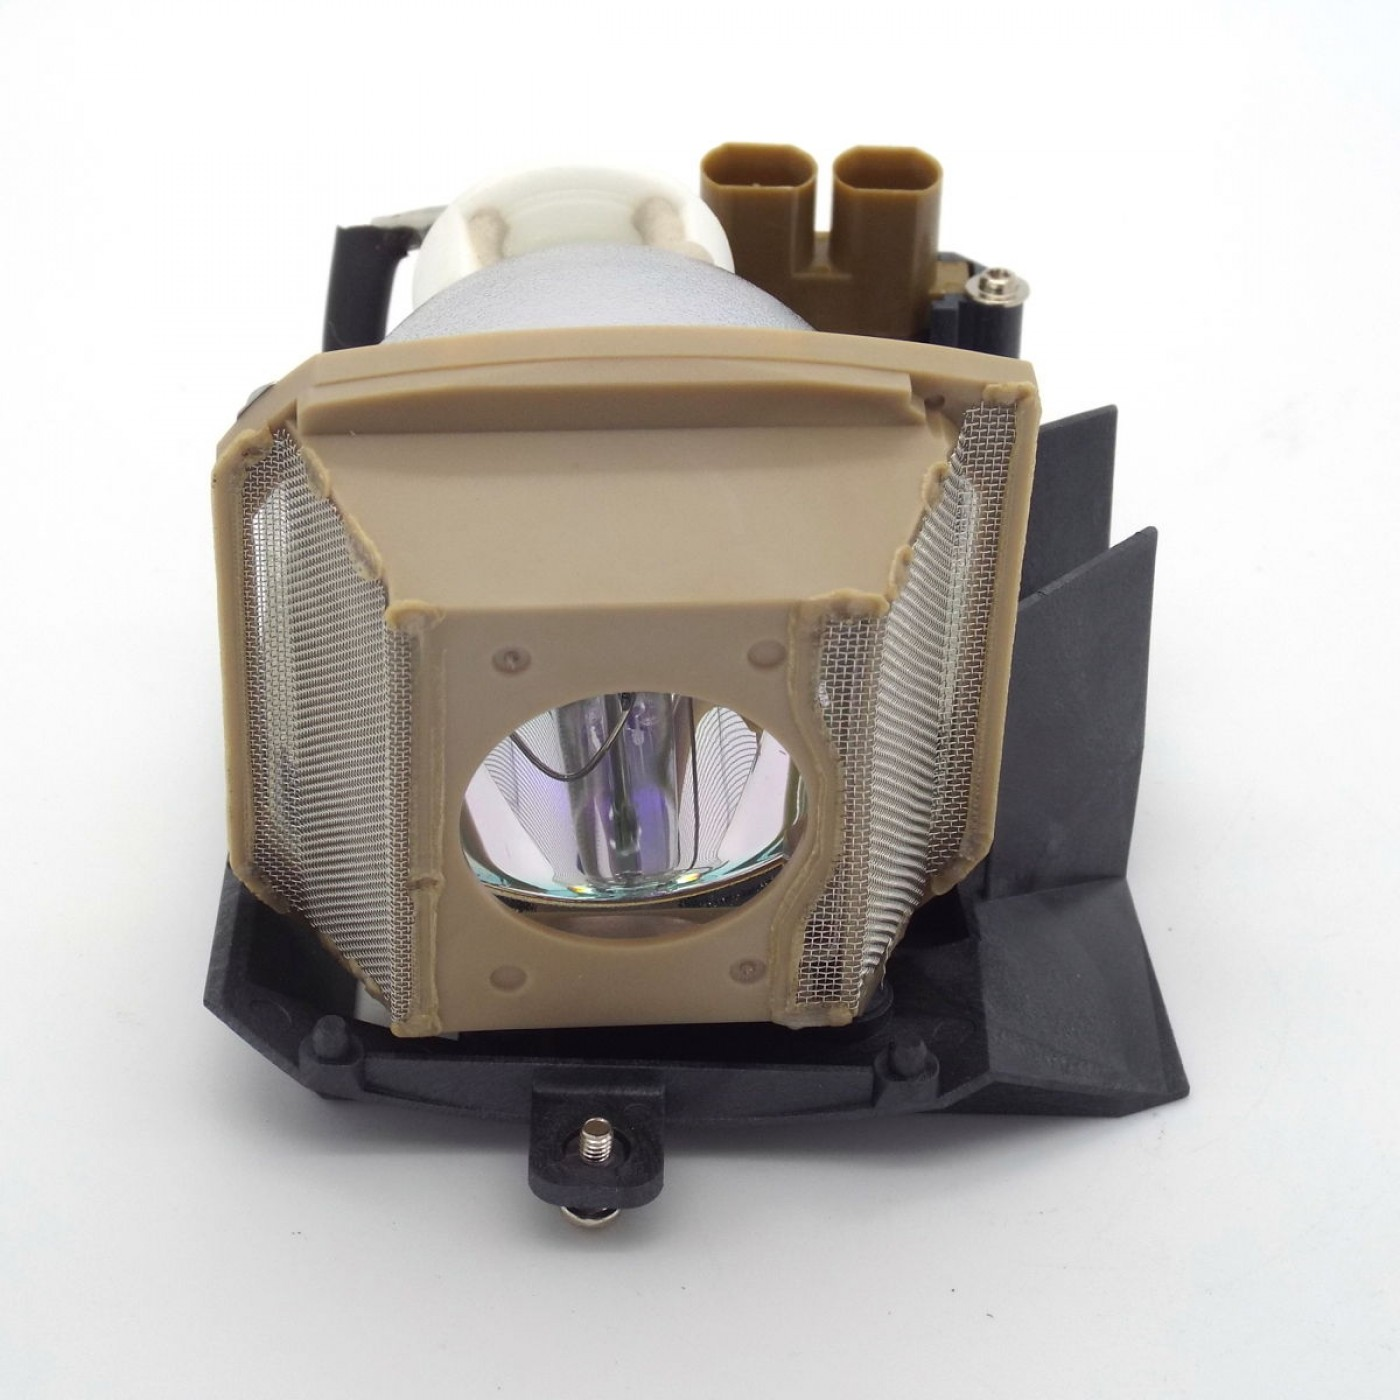 Mitsubishi Projector Bulb Replacement: Mitsubishi VLT-XD70LPProjector Assembly With Original